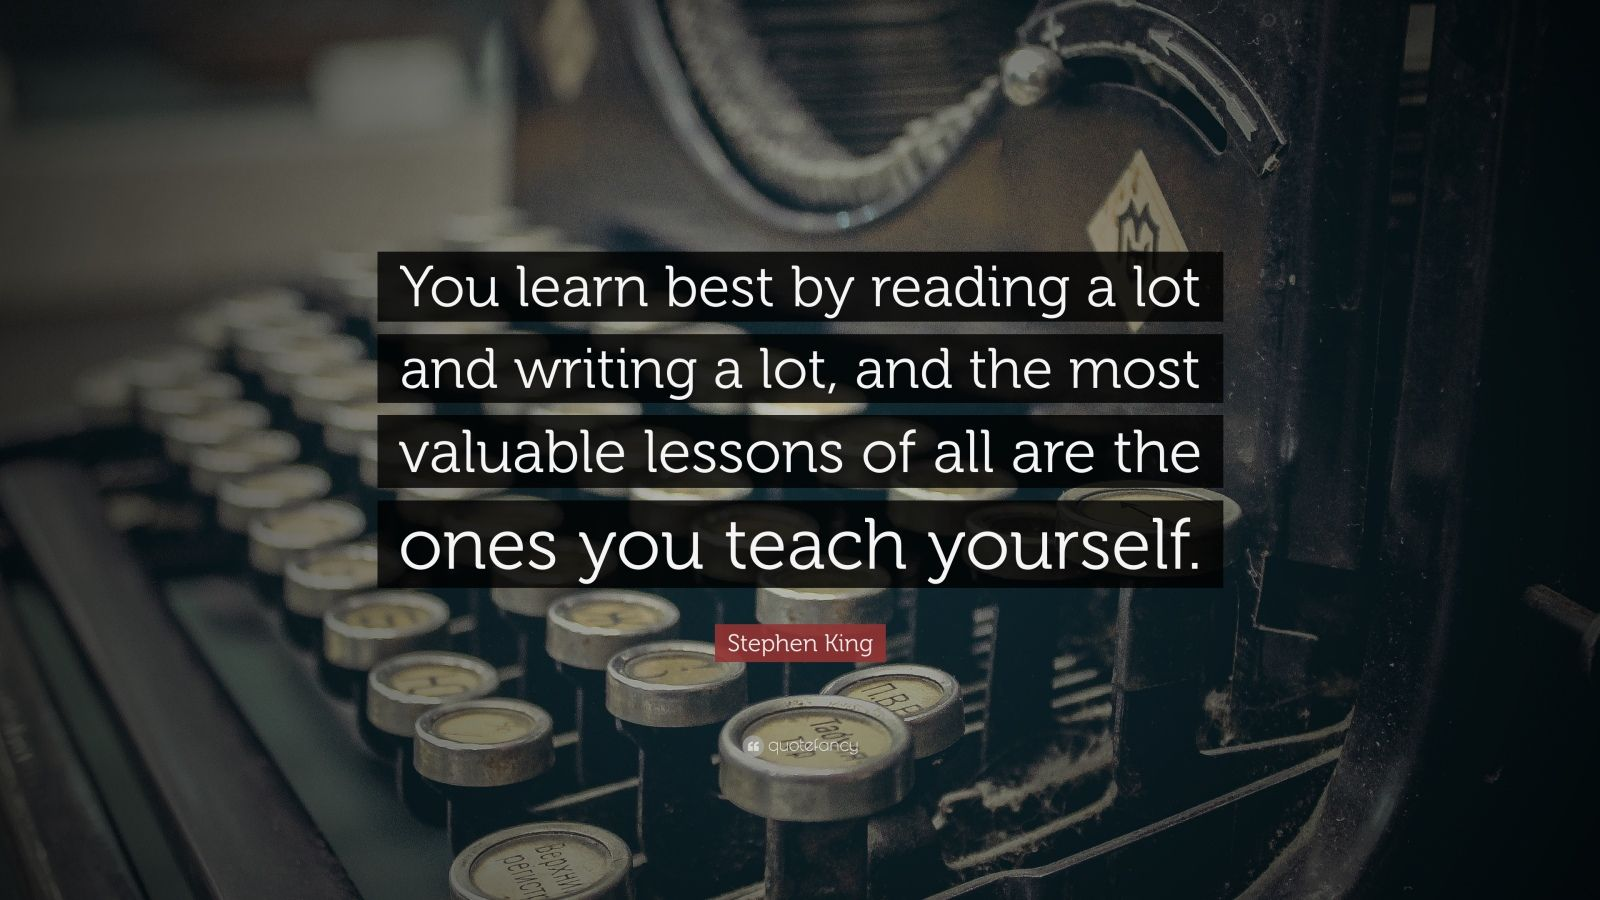 """Stephen King Quote: """"You learn best by reading a lot and writing a lot, and the most valuable lessons of all are the ones you teach yourself."""""""